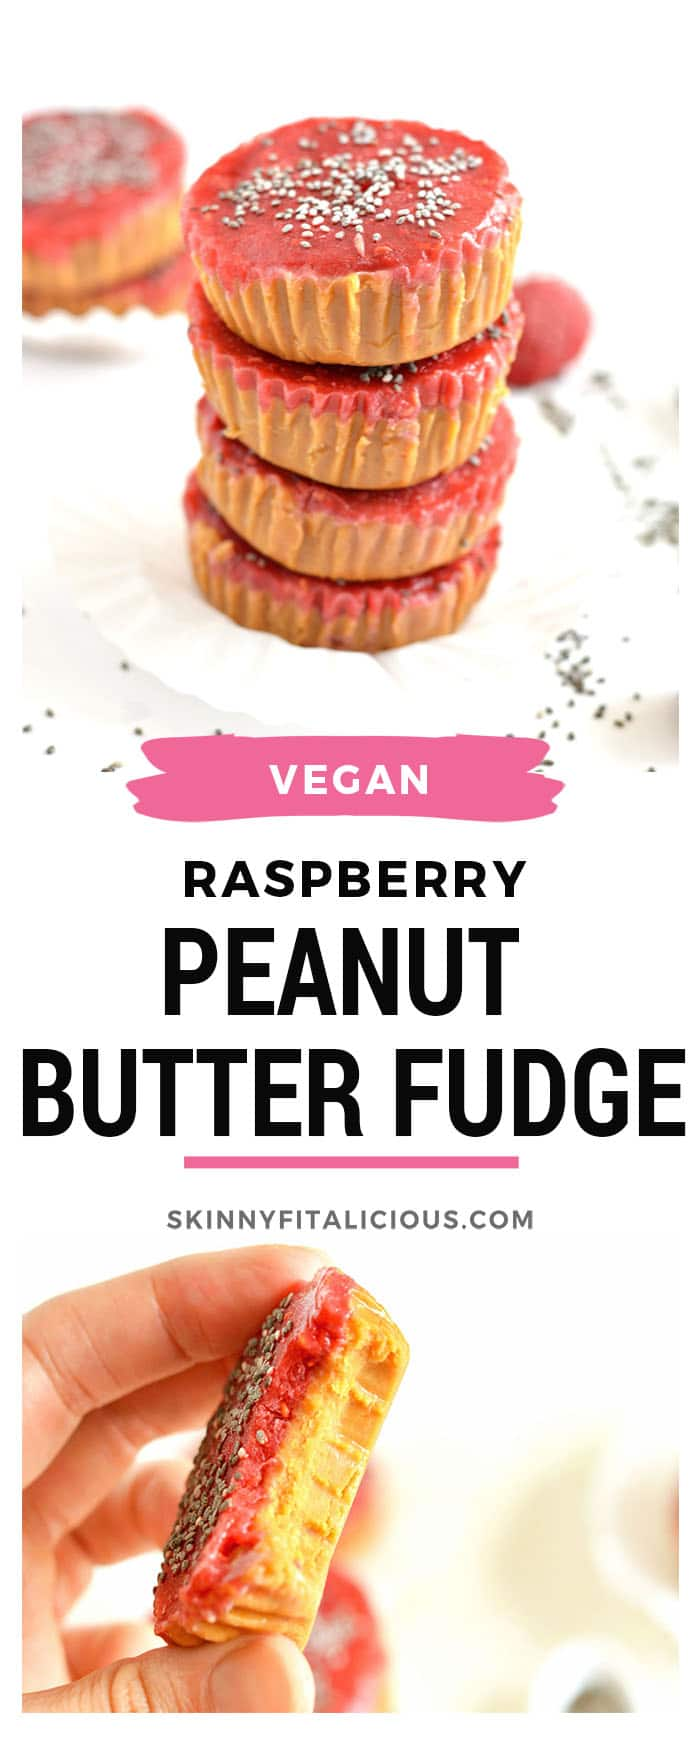 With just 3-ingredientsthisno-bake, quick and easy Raspberry Peanut Butter Fudge will be your new healthy dessert! Store in the freezer for an insanely delicious gluten free, Vegan anytime treat with a Paleo option too.